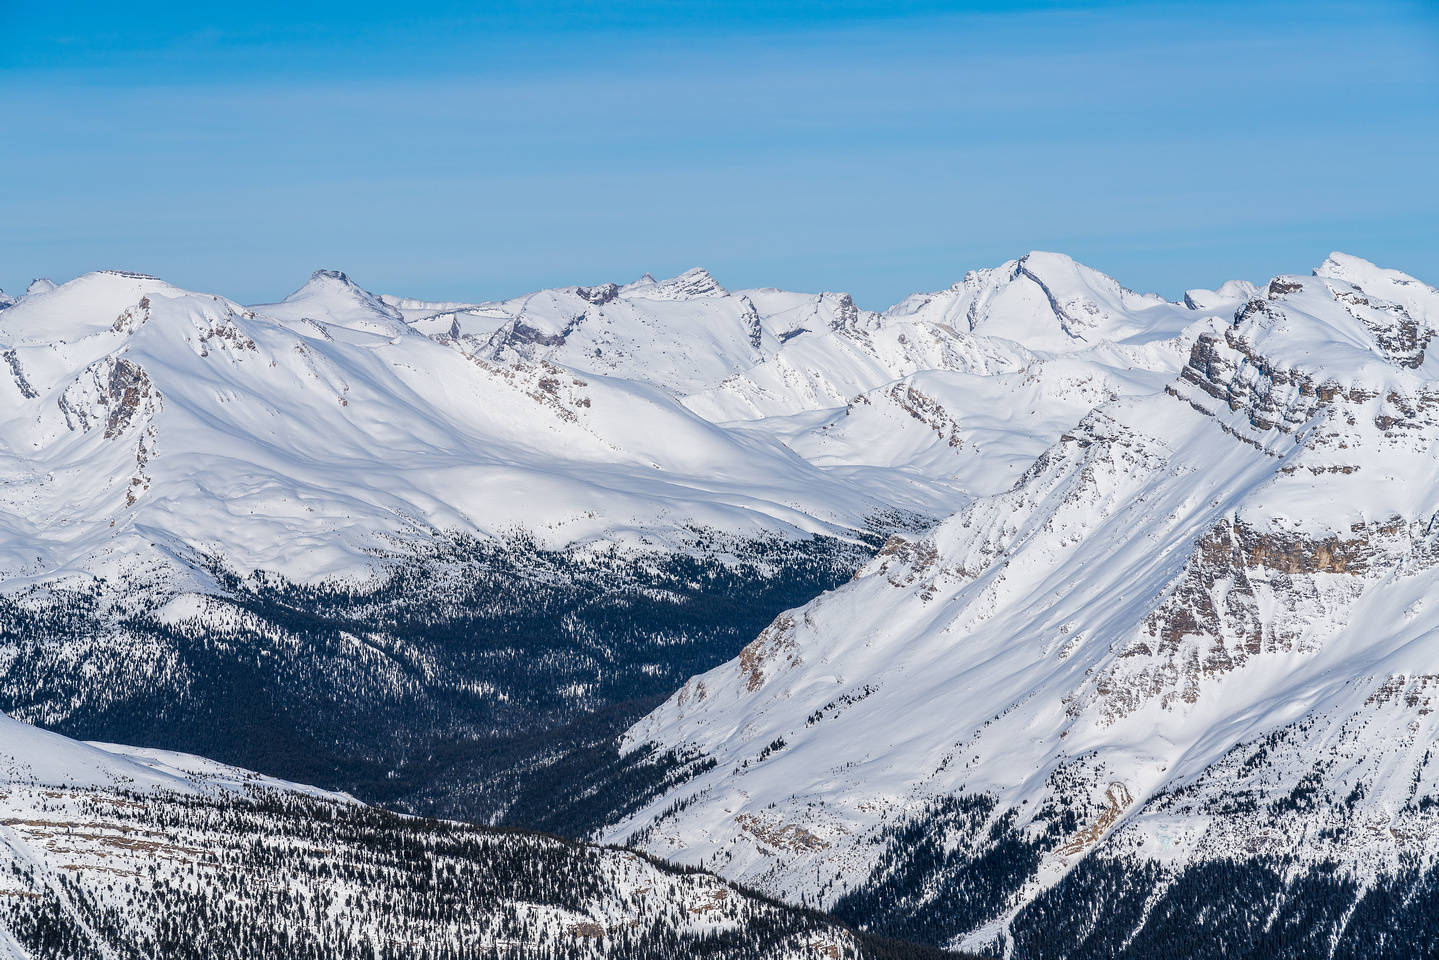 Deluc Peak (Three Brothers) at right of center.